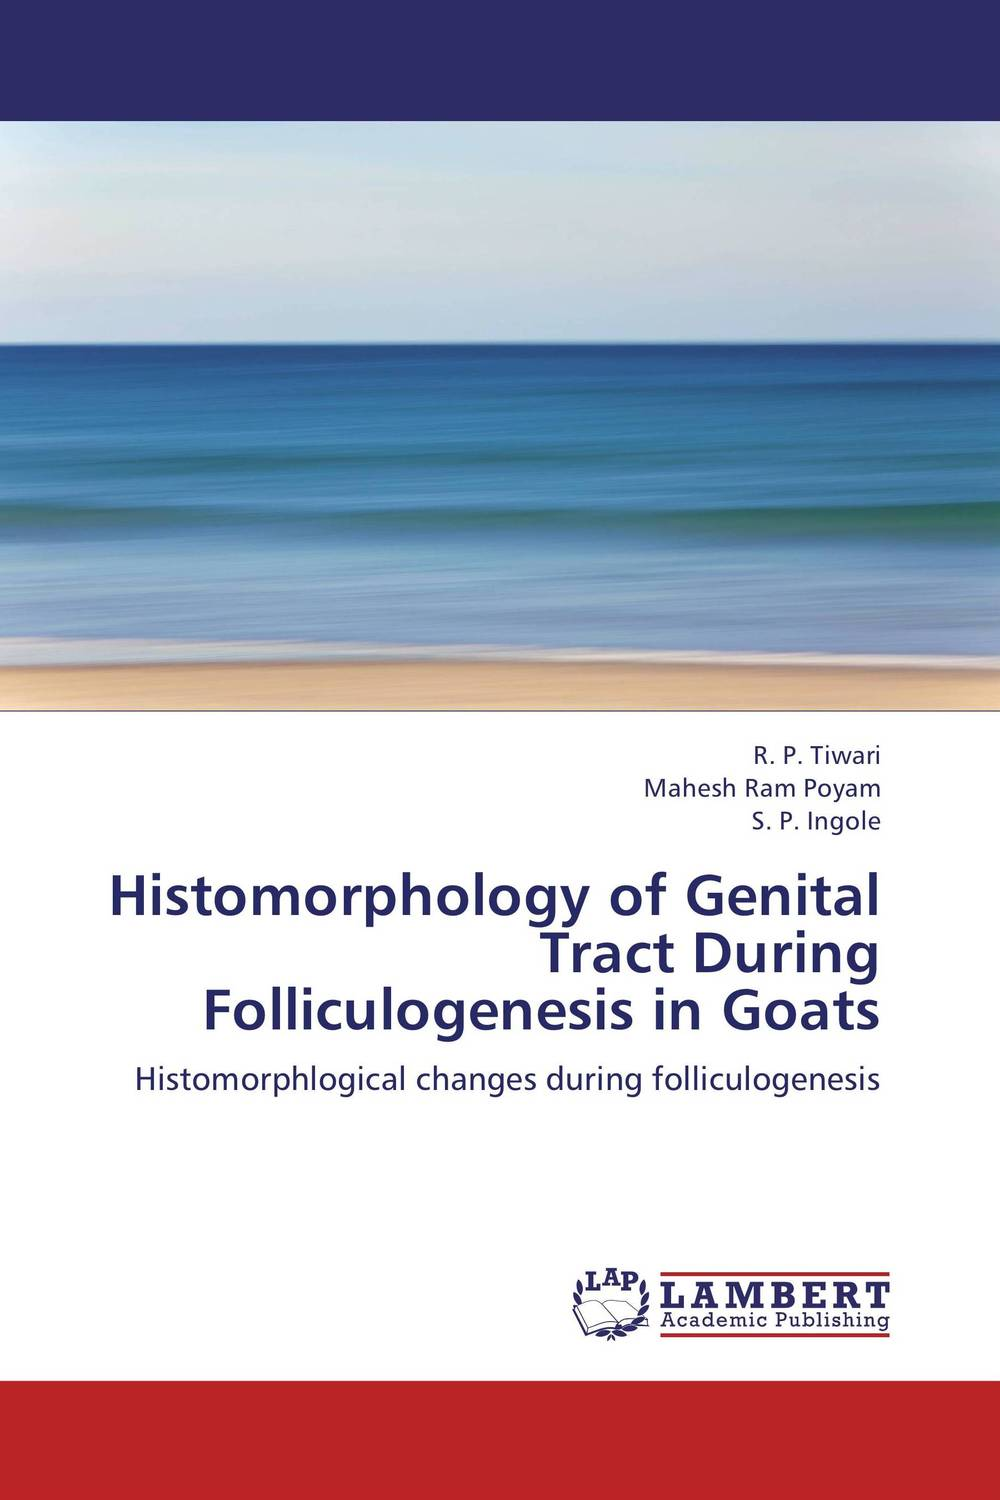 Histomorphology of Genital Tract During Folliculogenesis in Goats vishnu gupta modulation of ovarian functions and fertility response using insulin